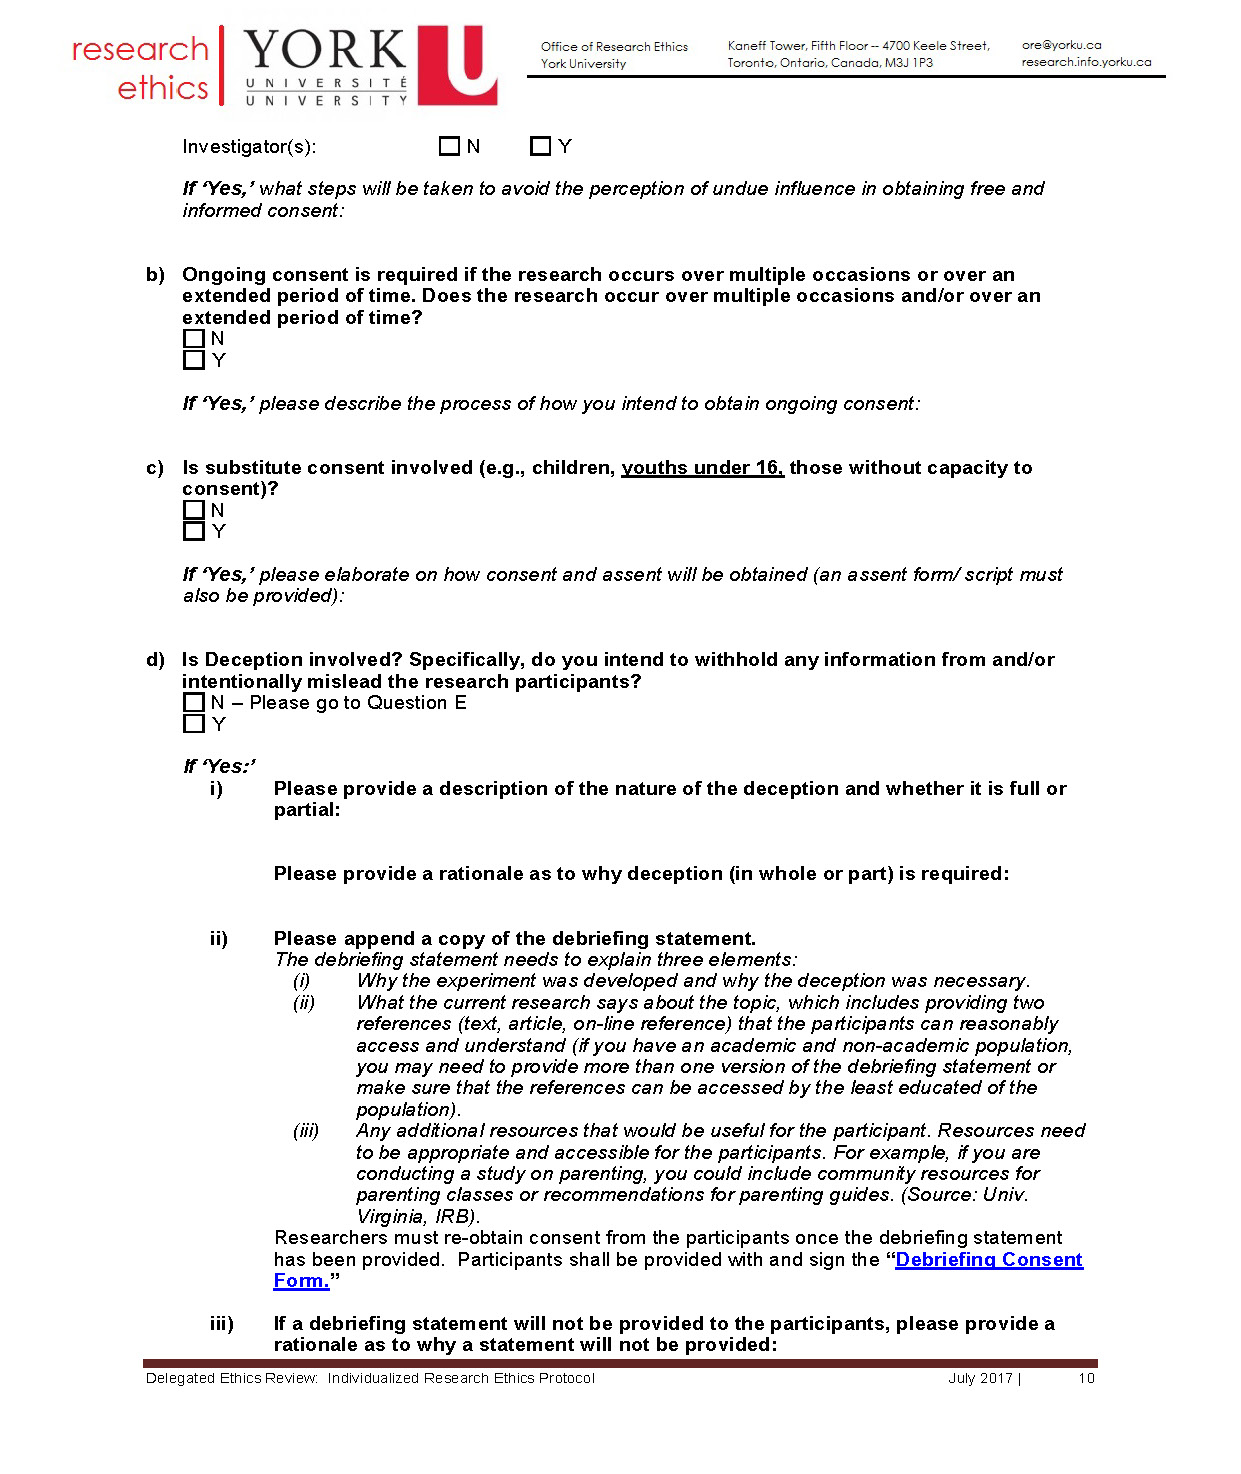 full-size image of the individualized protocol from research ethics page 10